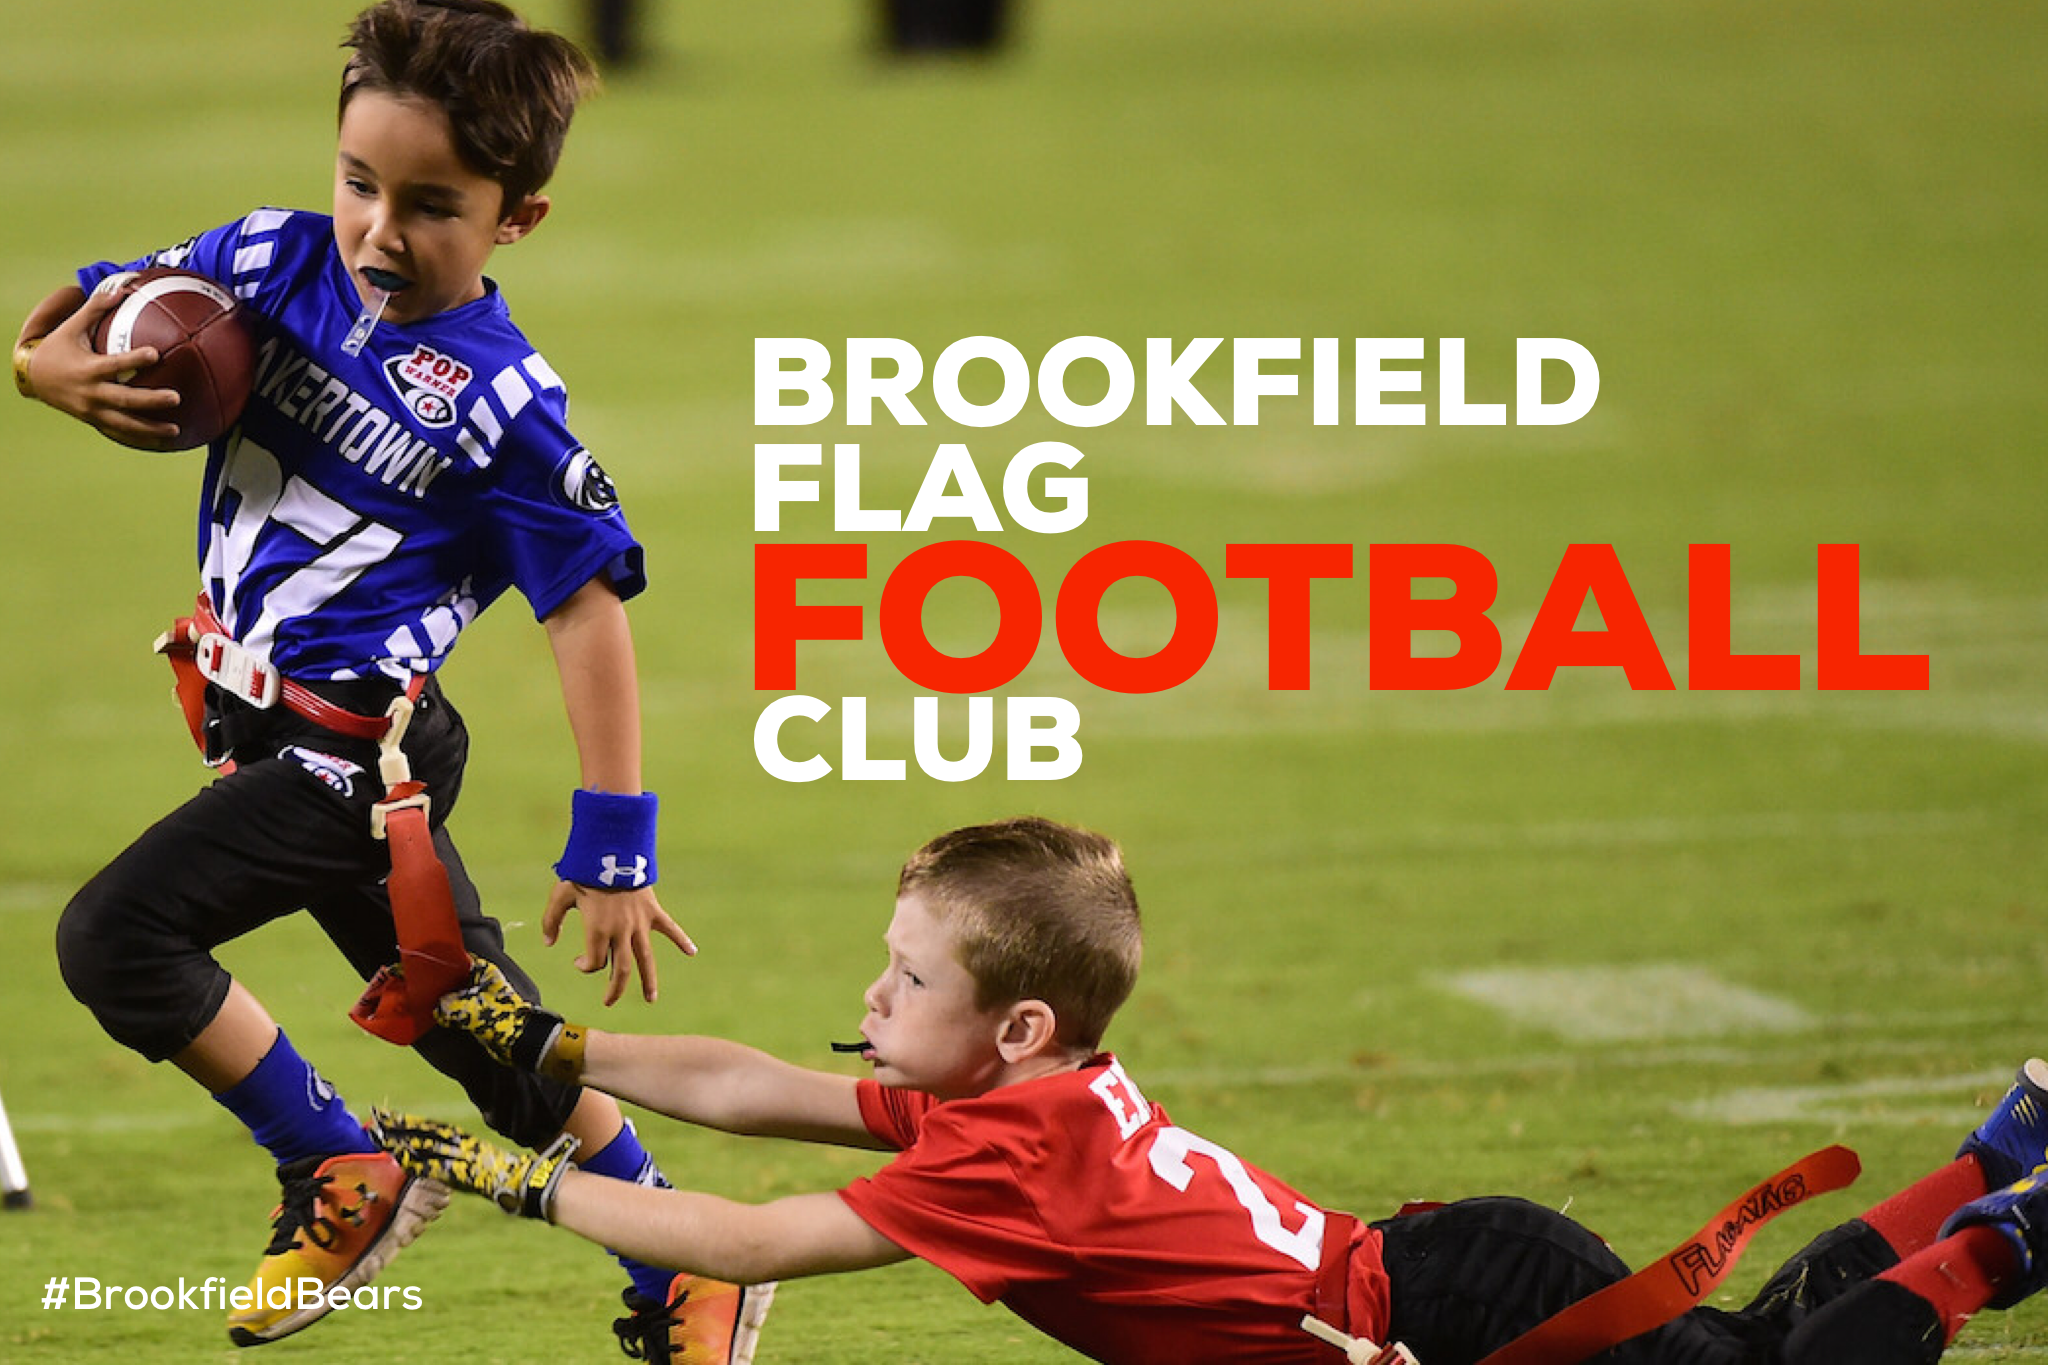 Flag Football Club - Every Friday from 1:30–2:30 (1st-3rd) and 2:30-3:30 (4th-8th) for an NFL Flag football training camp.You will learn all about the skills, rules, and techniques you'll need to play flag football. The hope is that we can start a Flag football team to compete in the fall. This will be a six week program and will run from April 26th until May 31st.There will be a club fee of $100; with your paid registration you will receive a practice jersey, mouth guard and a set of flags.For registration or more information email CAitchinson@BrookfieldSchool.com